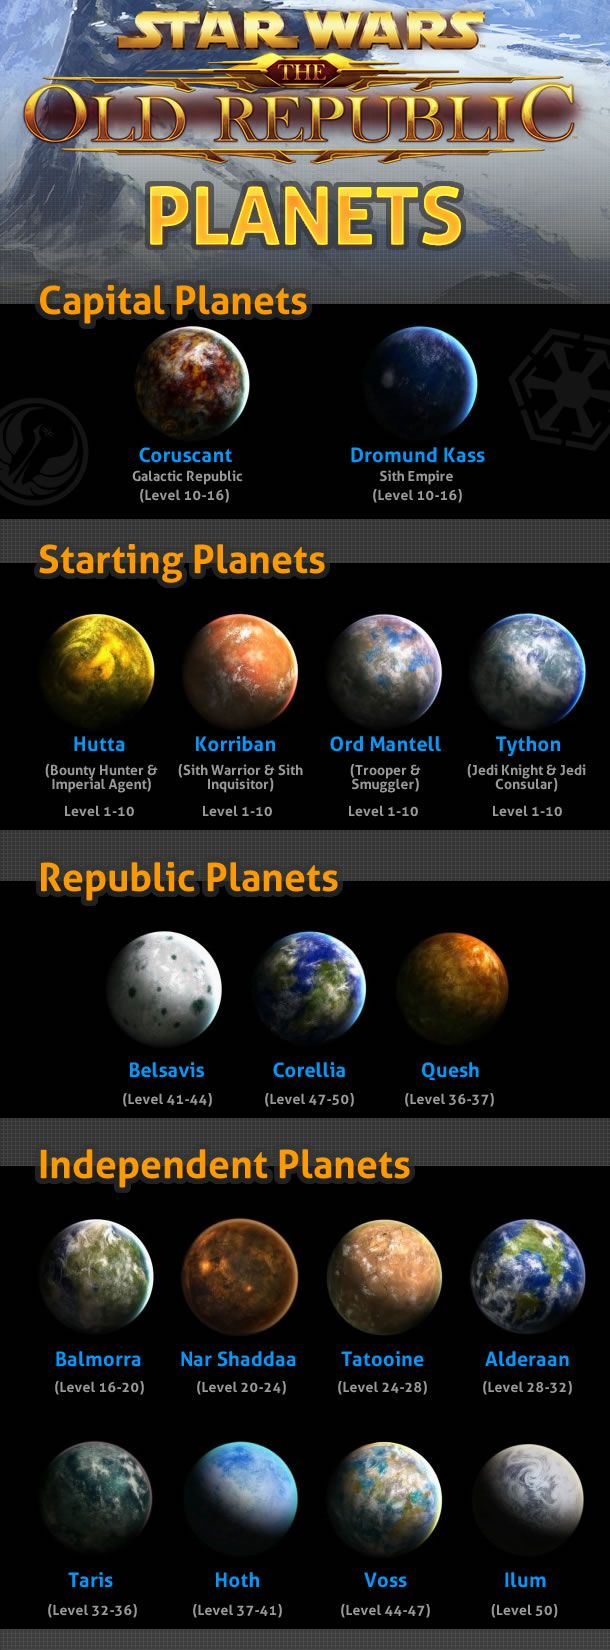 swtor-planets-infographic.jpg 610×1,650 pixeles